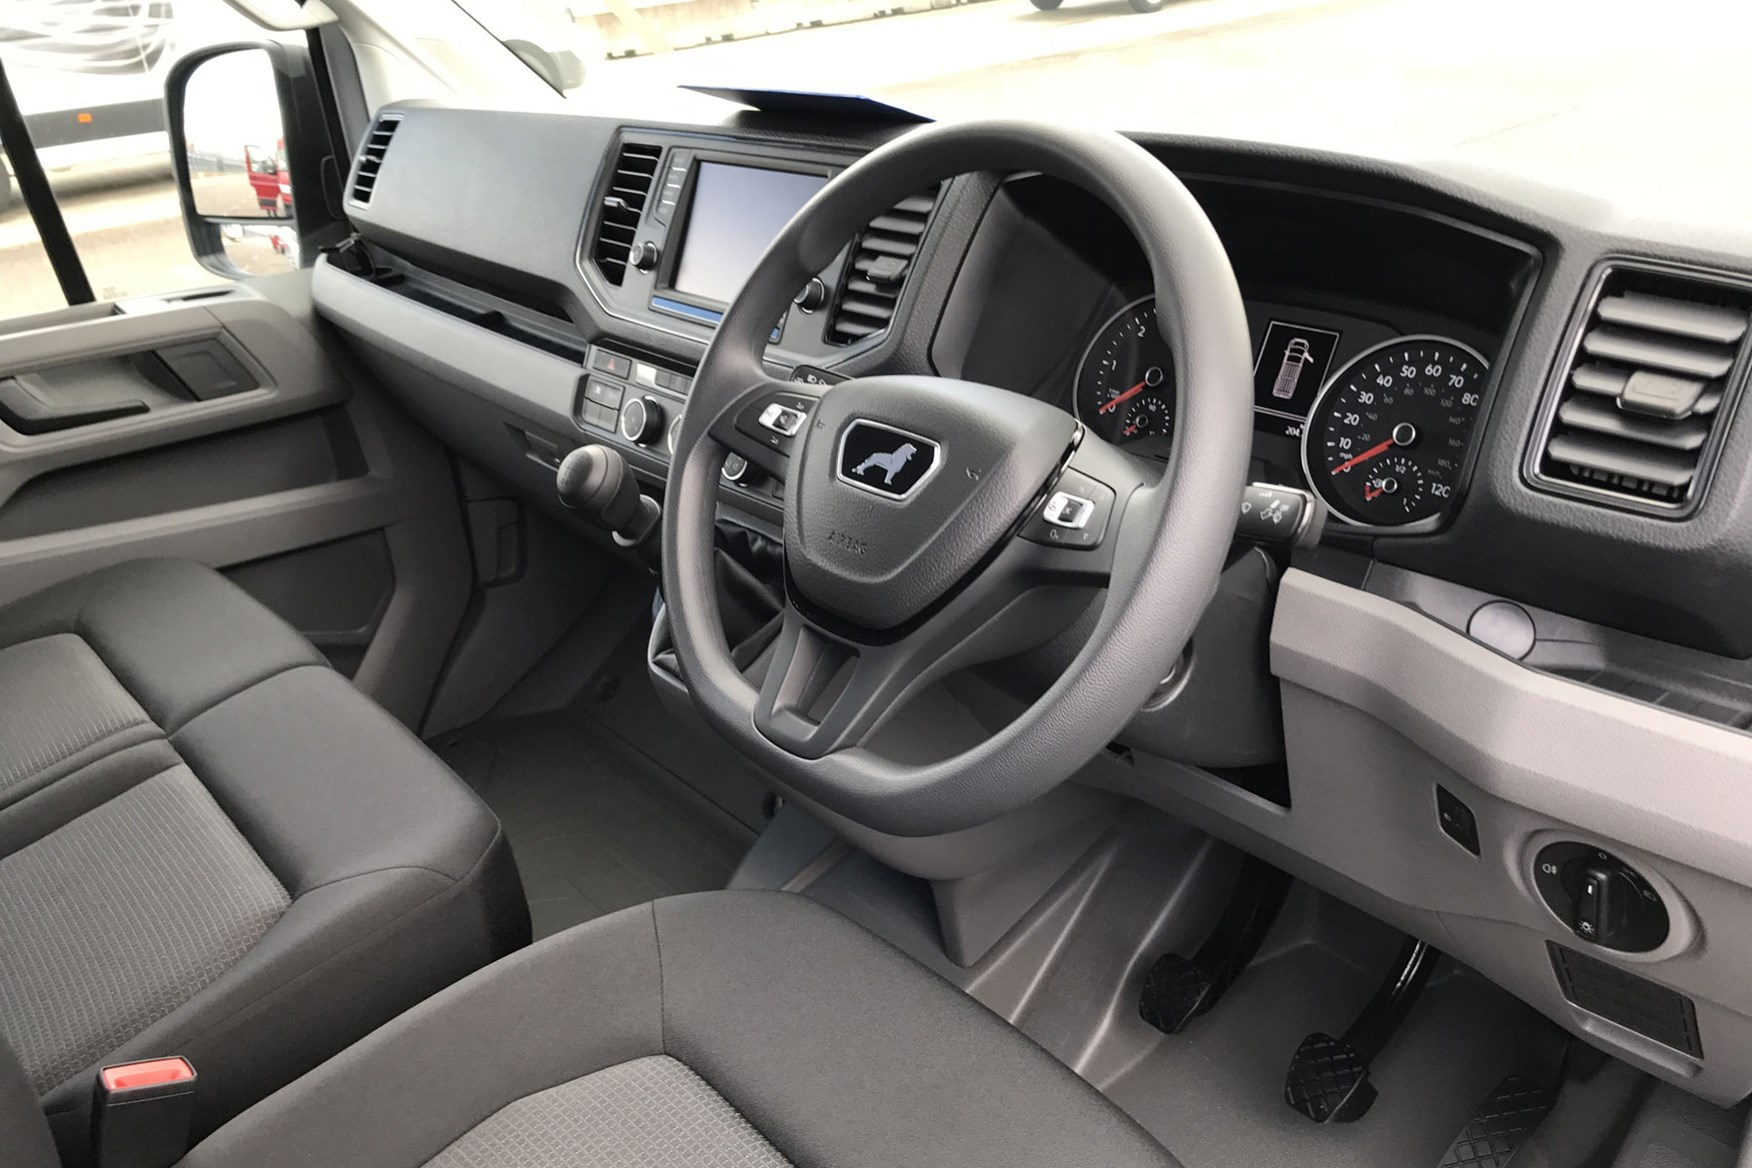 MAN TGE (2017-on), cab interior, steering wheel, dials, seats